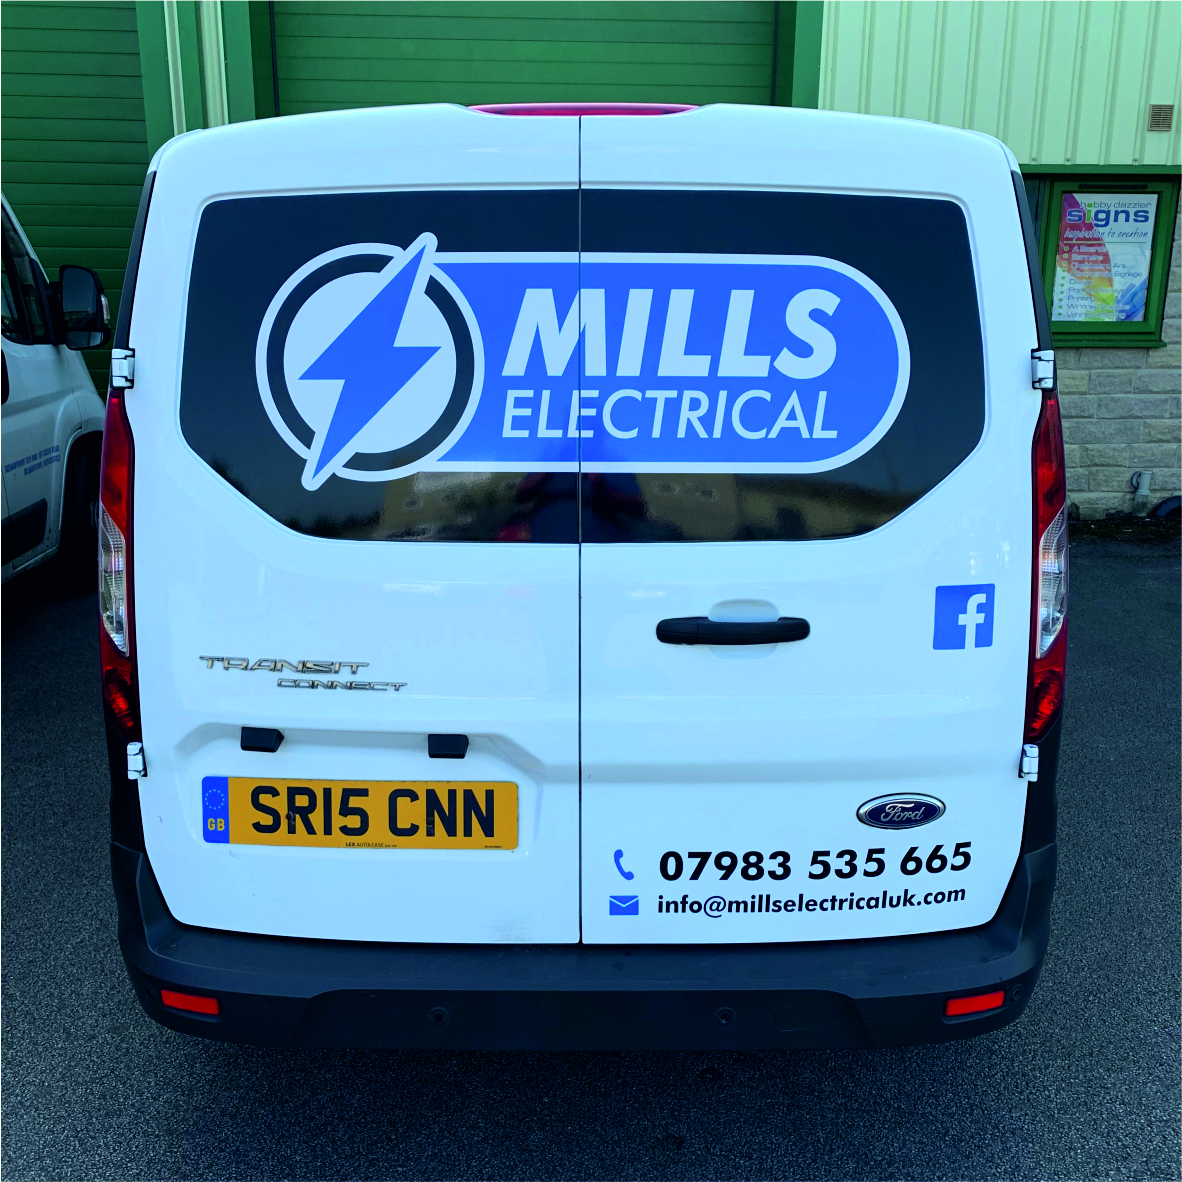 Mill Electrical Vehicle graphics livery 2